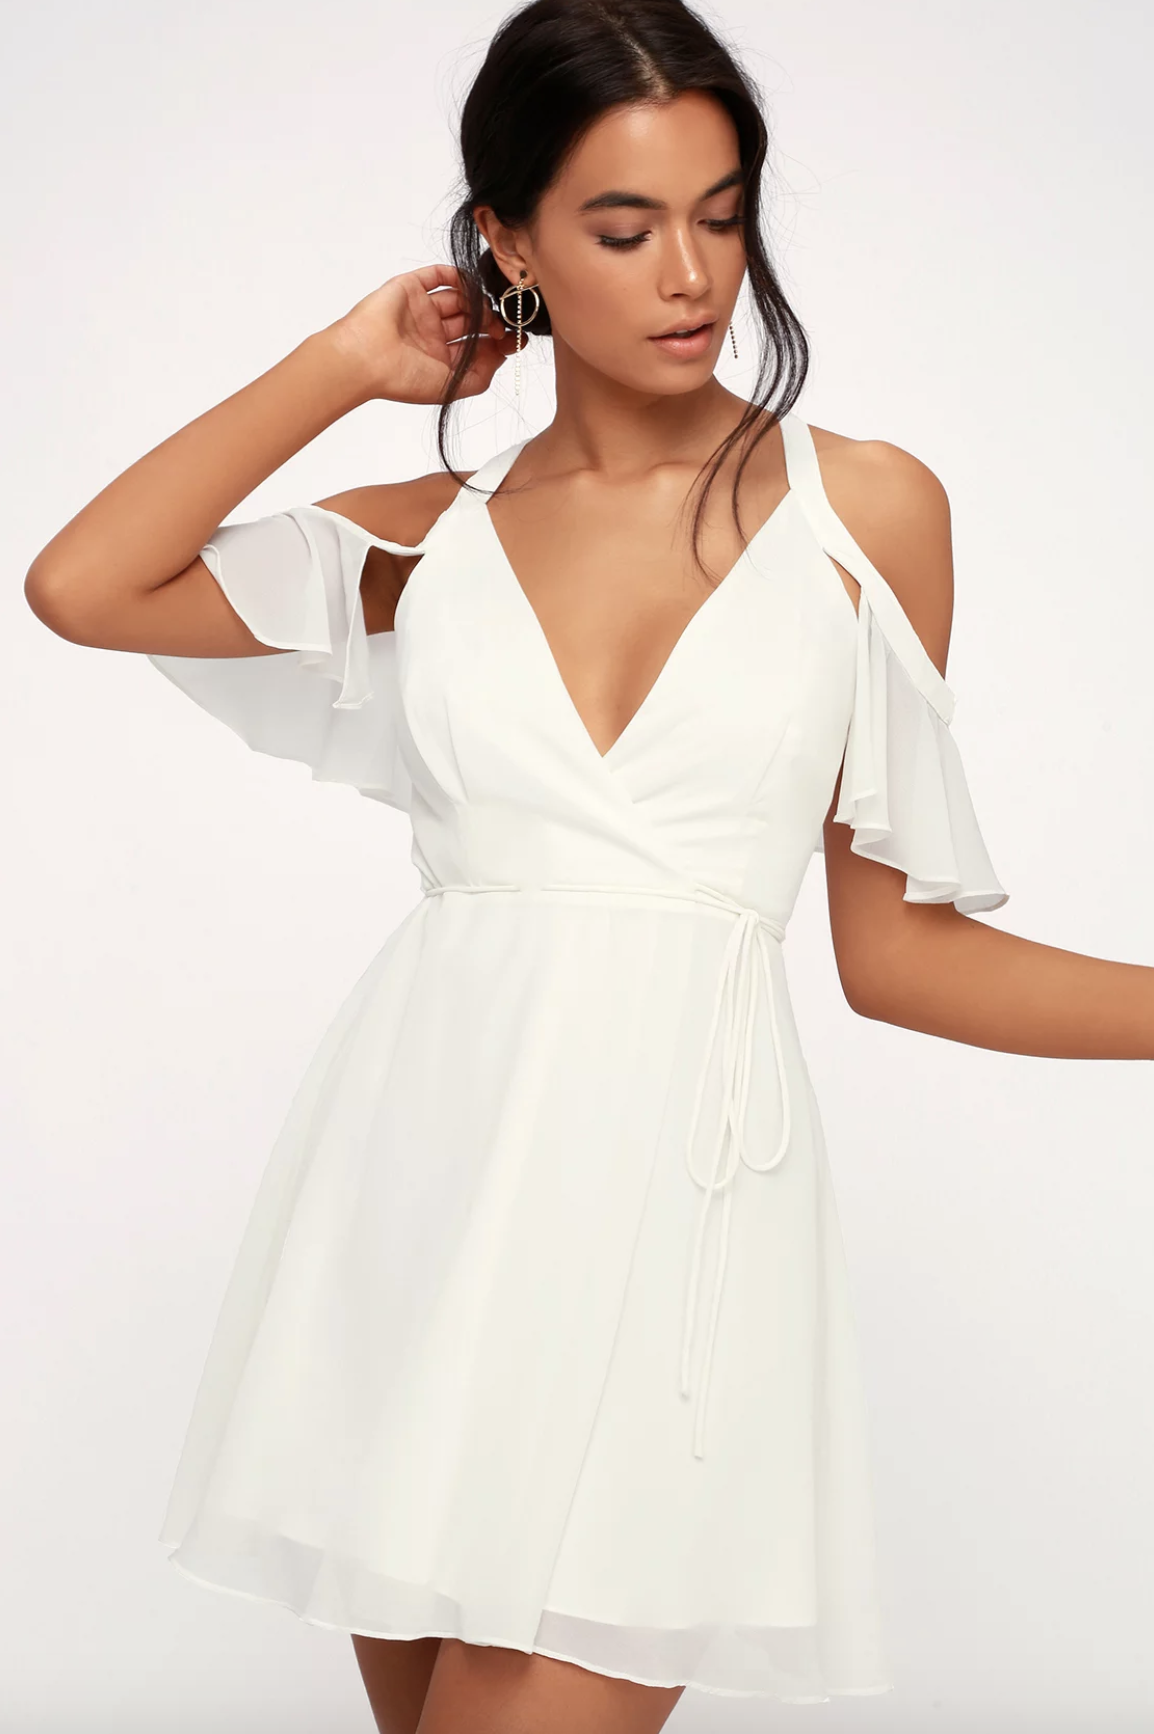 BOMBSHELL WHITE OFF-THE-SHOULDER WRAP DRESS Bachelorette party dress, white dress, cocktail dress, bridal shower dress   www.thoughtfully-thrifted.com